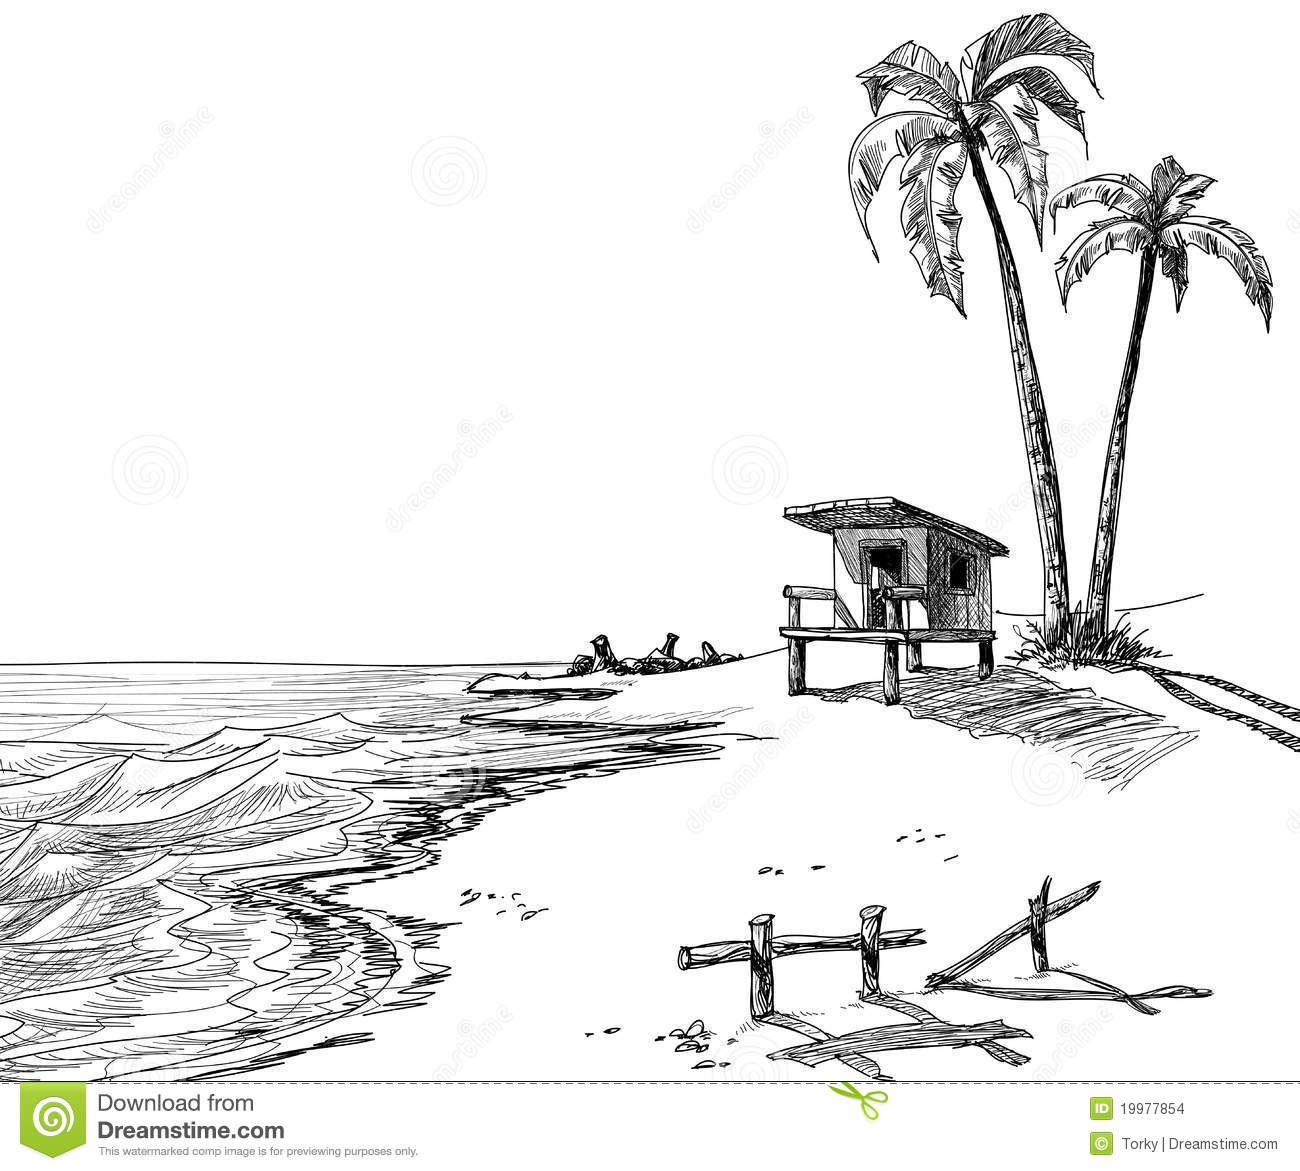 3d Architecture Design Drawing Adorable Garden Picture On 3d Architecture Design Drawing Set also Gambar Mewarnai also Pearson 35 likewise Stock Images Summer Beach Sketch Image19977854 together with Small Modern House Plans One Floor Modern House Plans Free Modern House Designs Pictures Gallery Ultra Modern House Floor Plans. on house boat designs